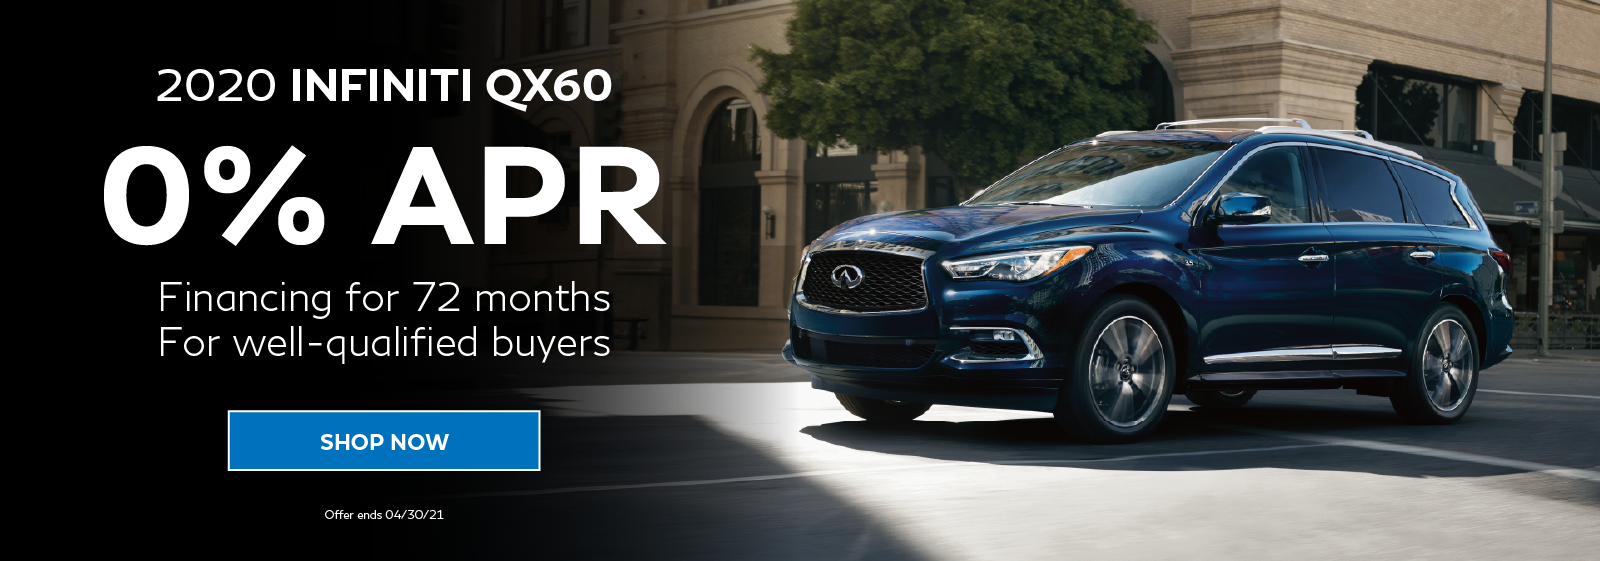 0% APR on all new 2021 INFINITI QX60 Models. Click to shop now.